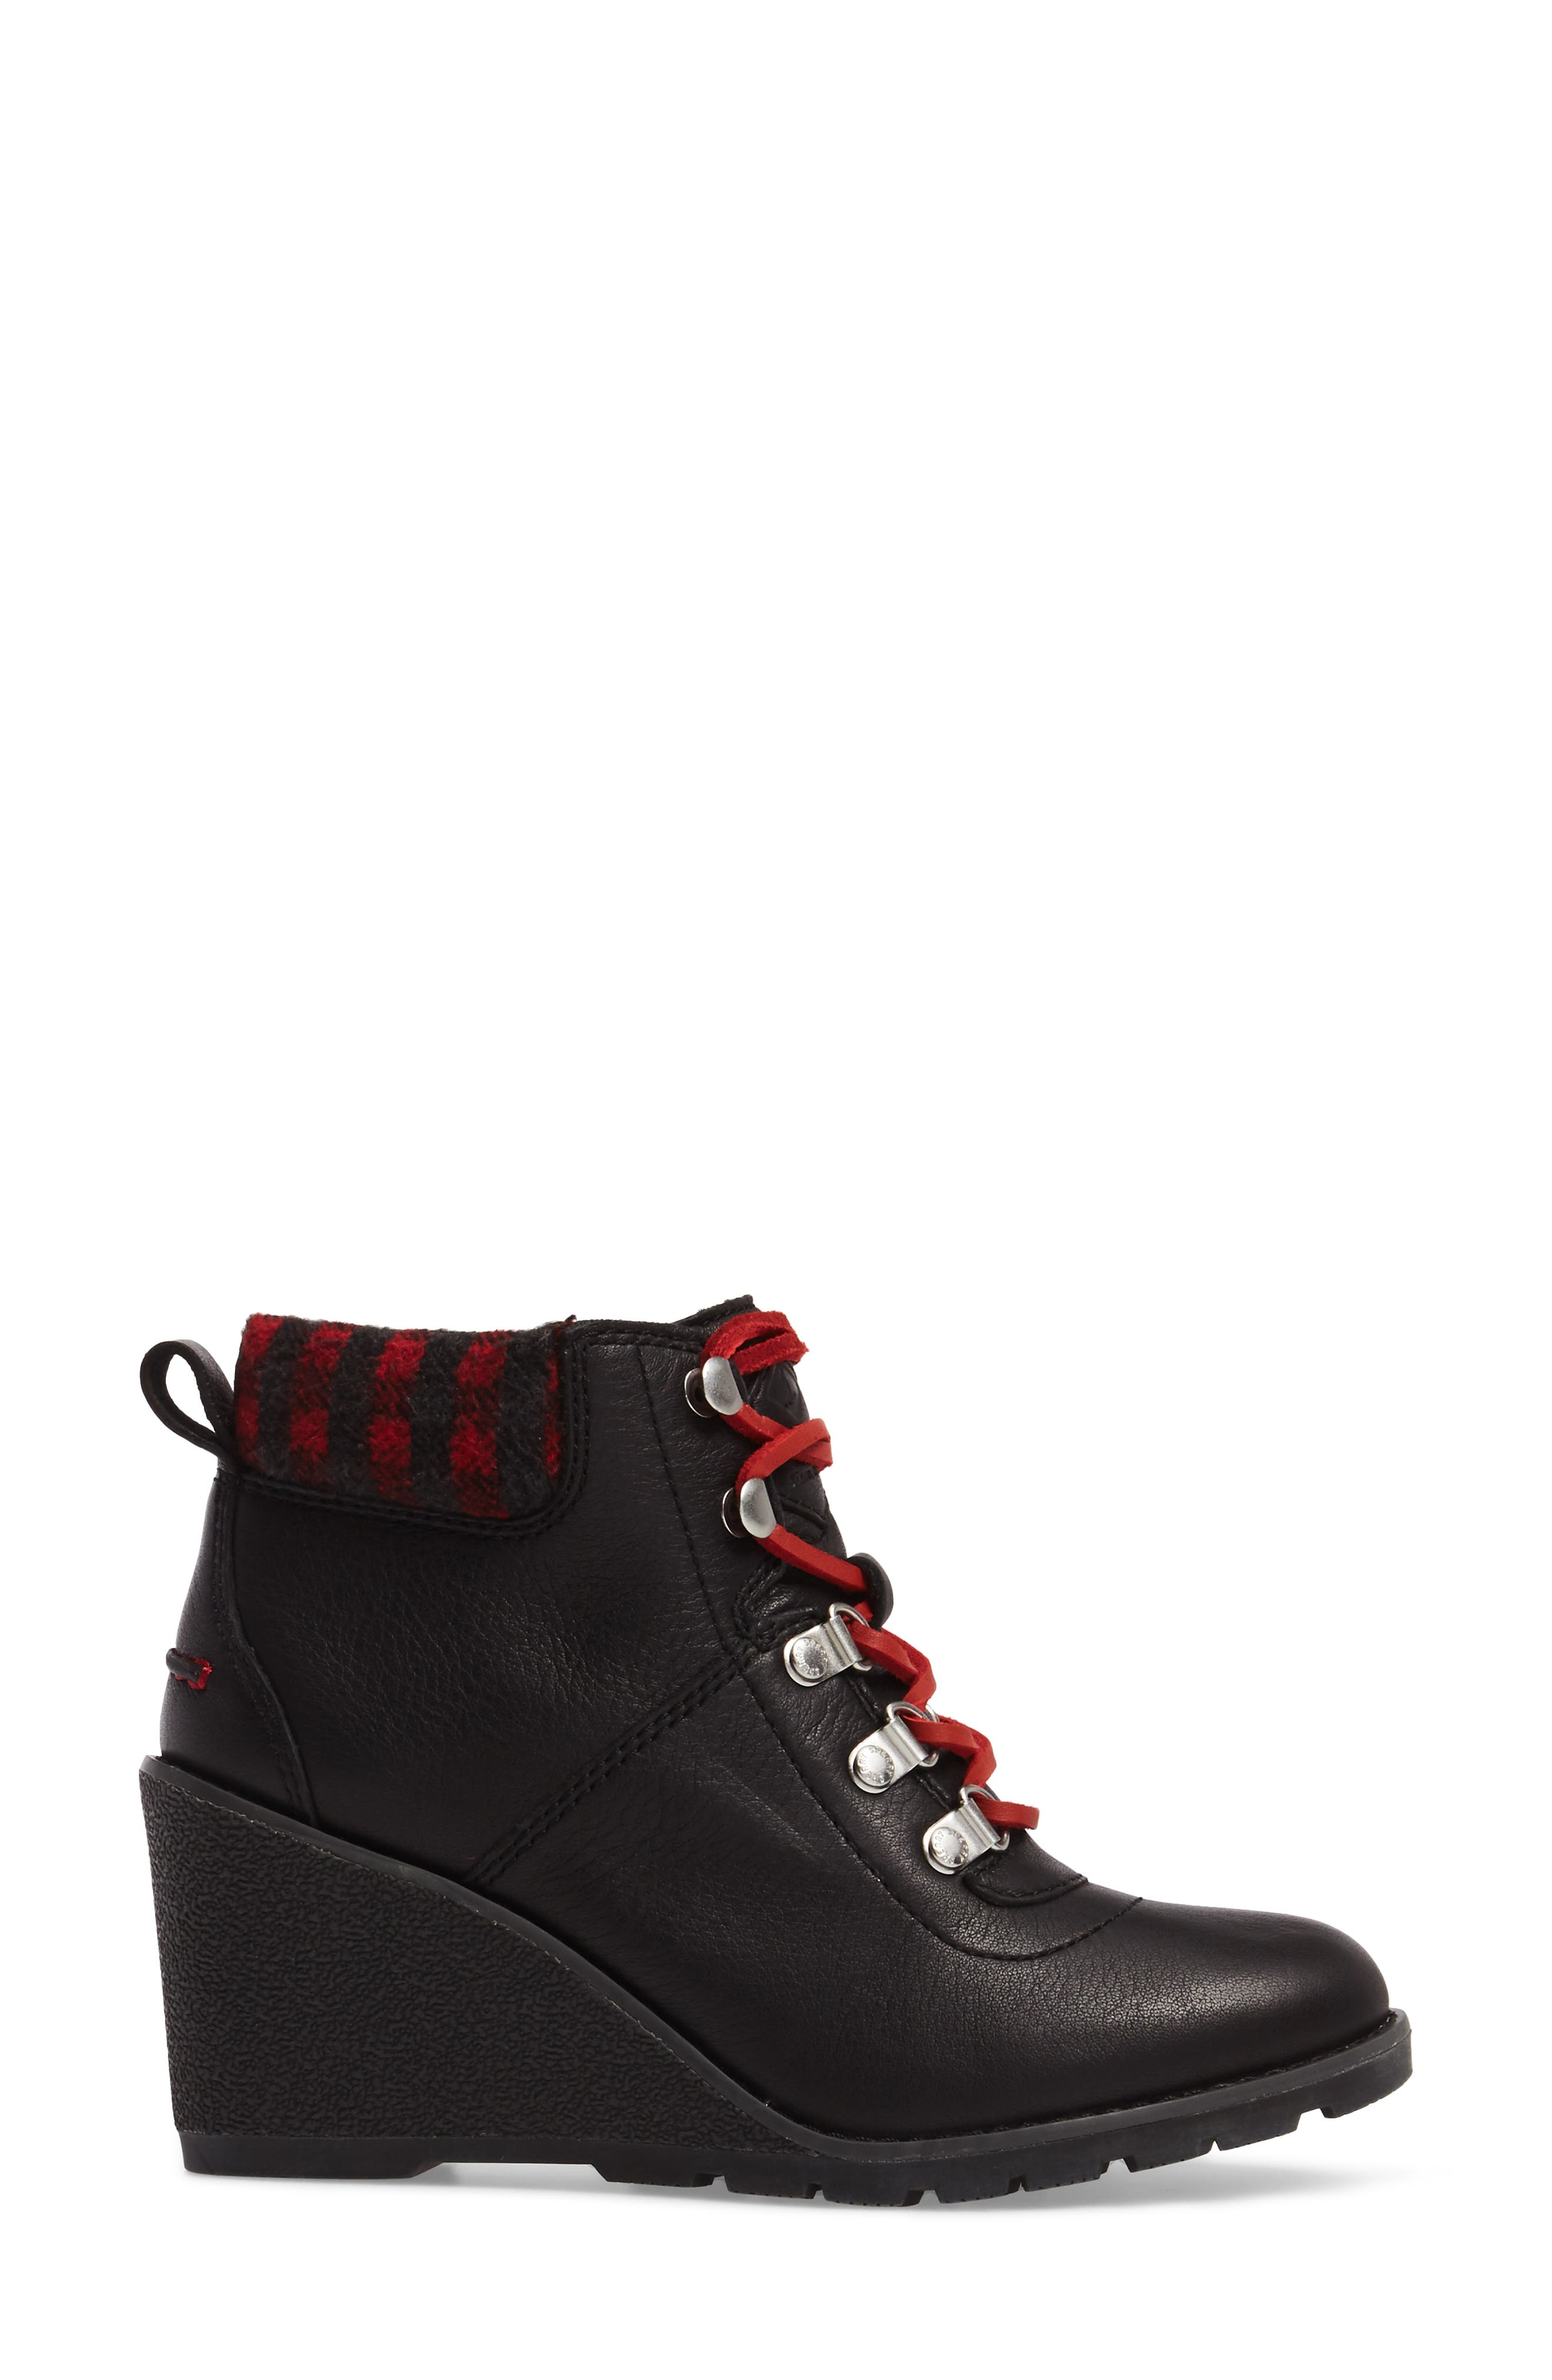 Top-Sider<sup>®</sup> Celeste Bliss Wedge Boot,                             Alternate thumbnail 3, color,                             Black Leather